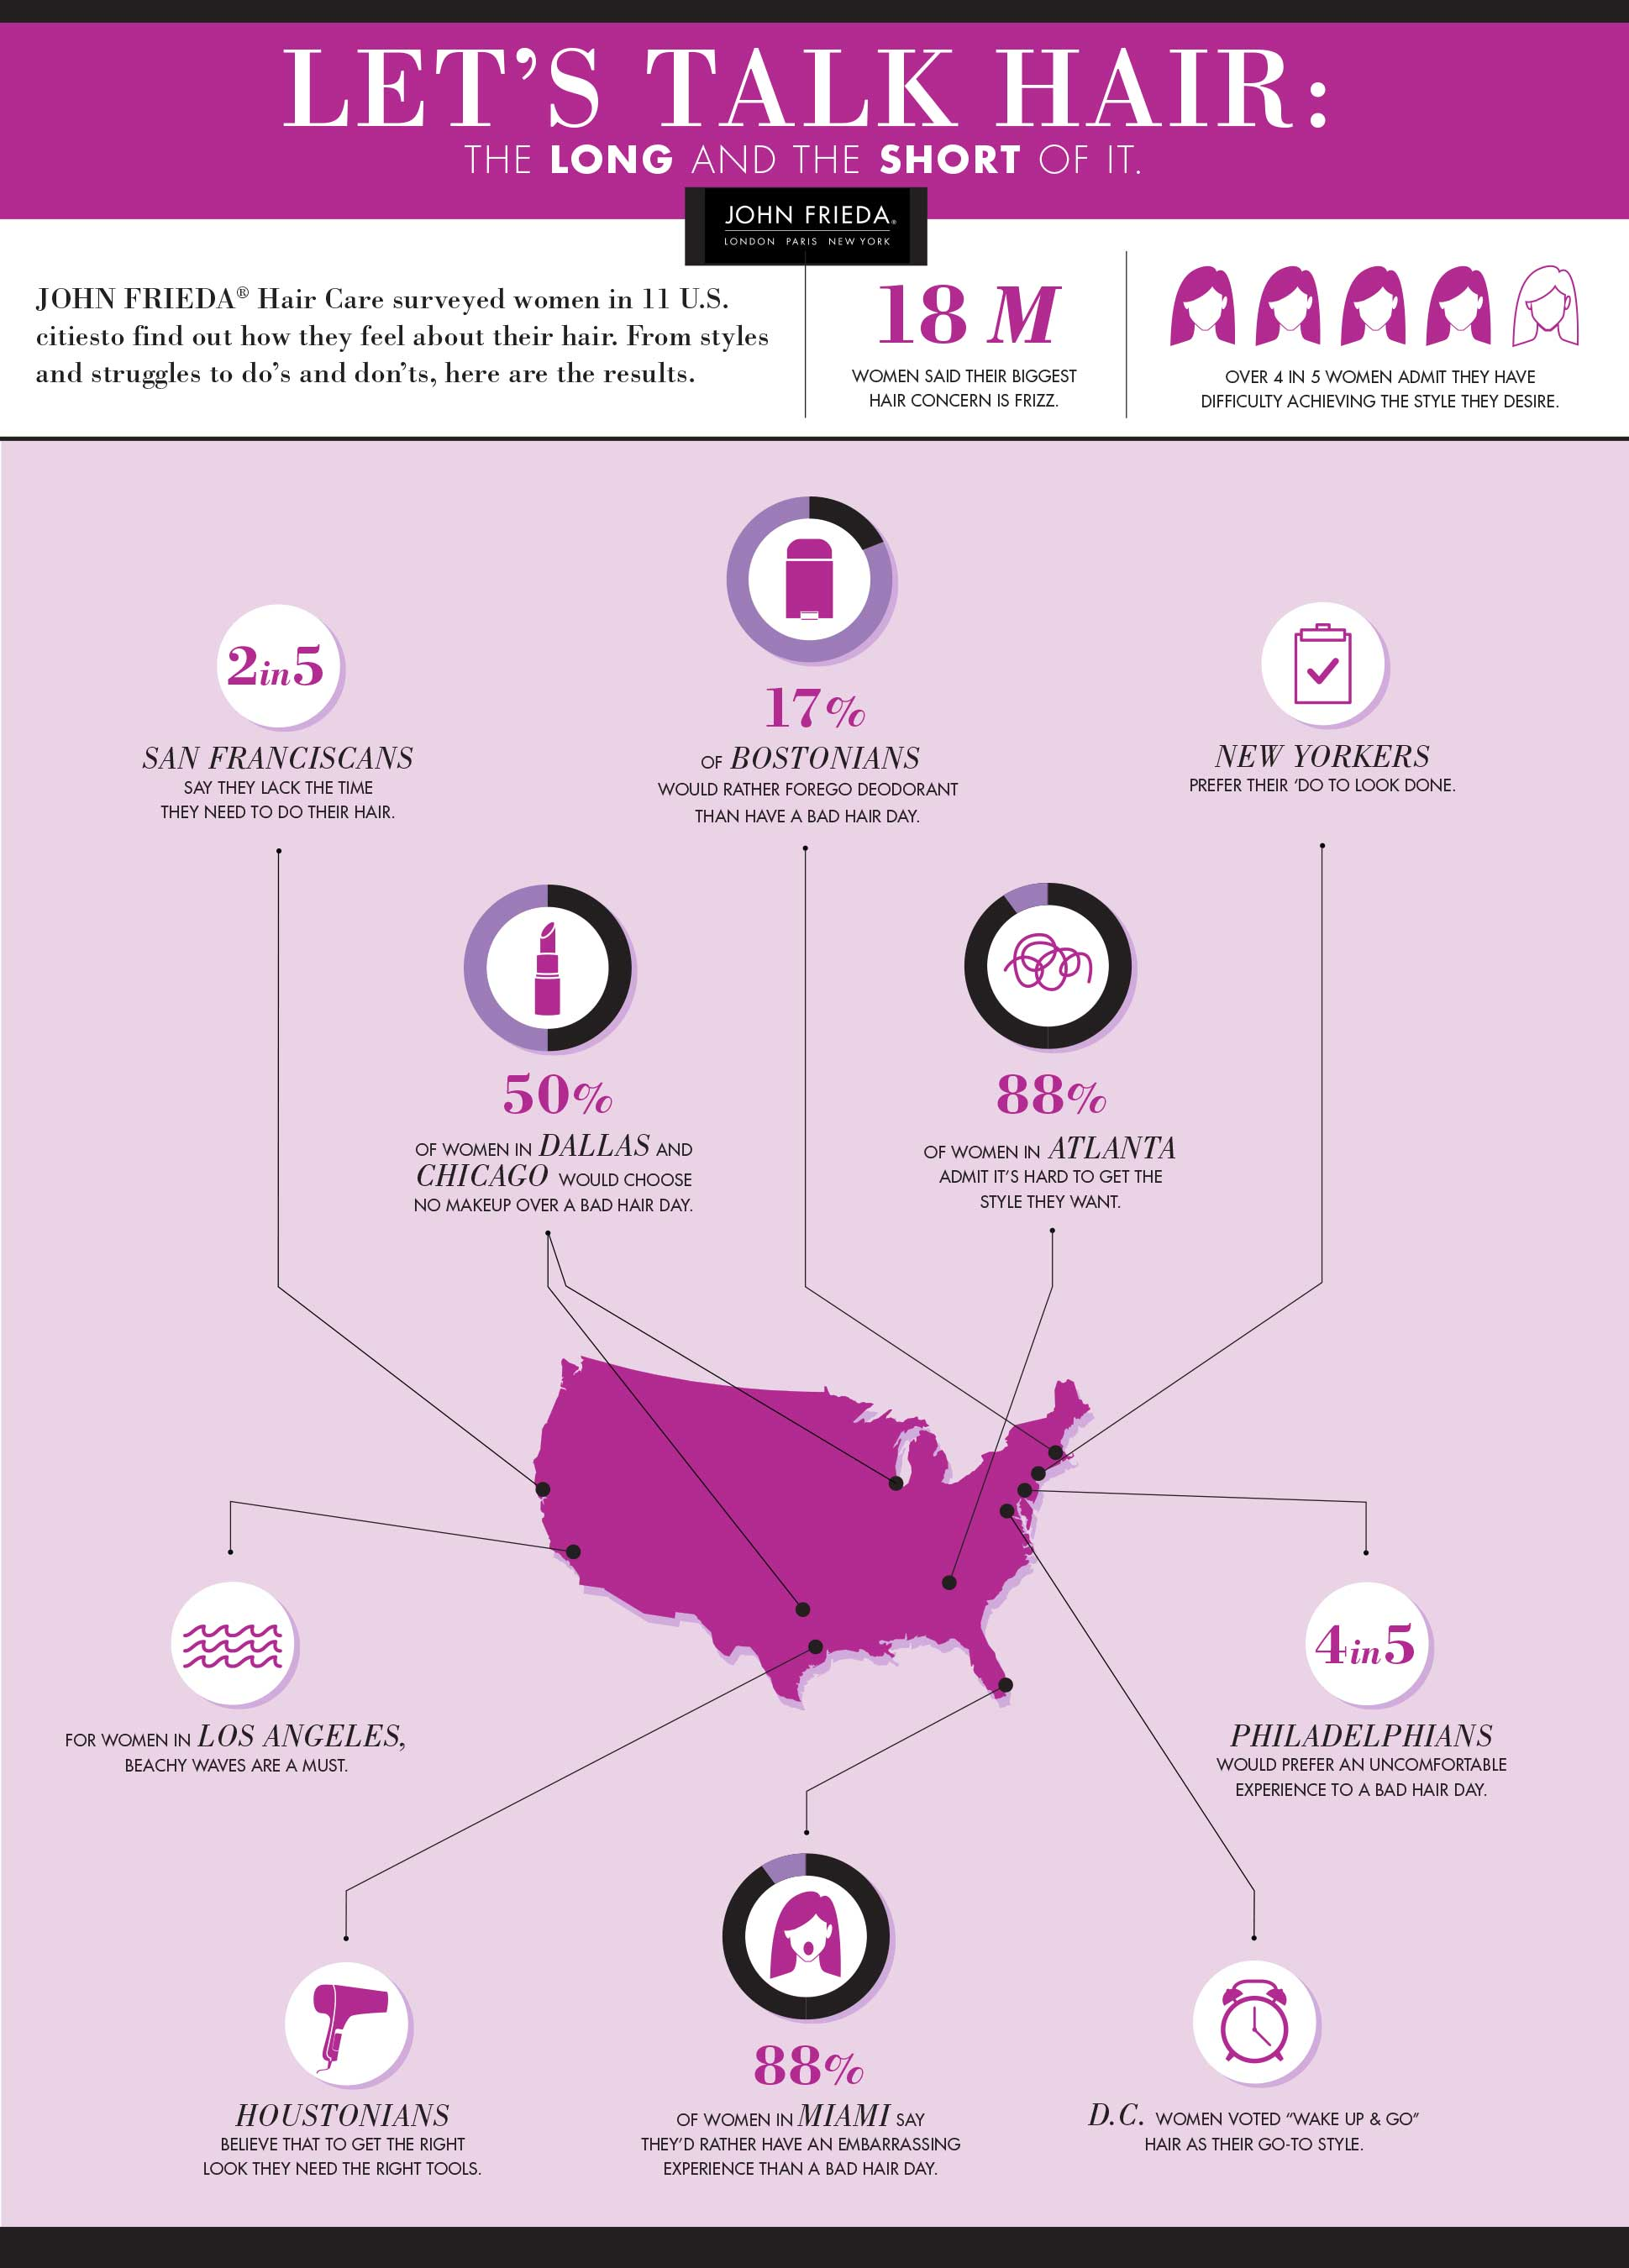 John Frieda Hair Care National Survey Results